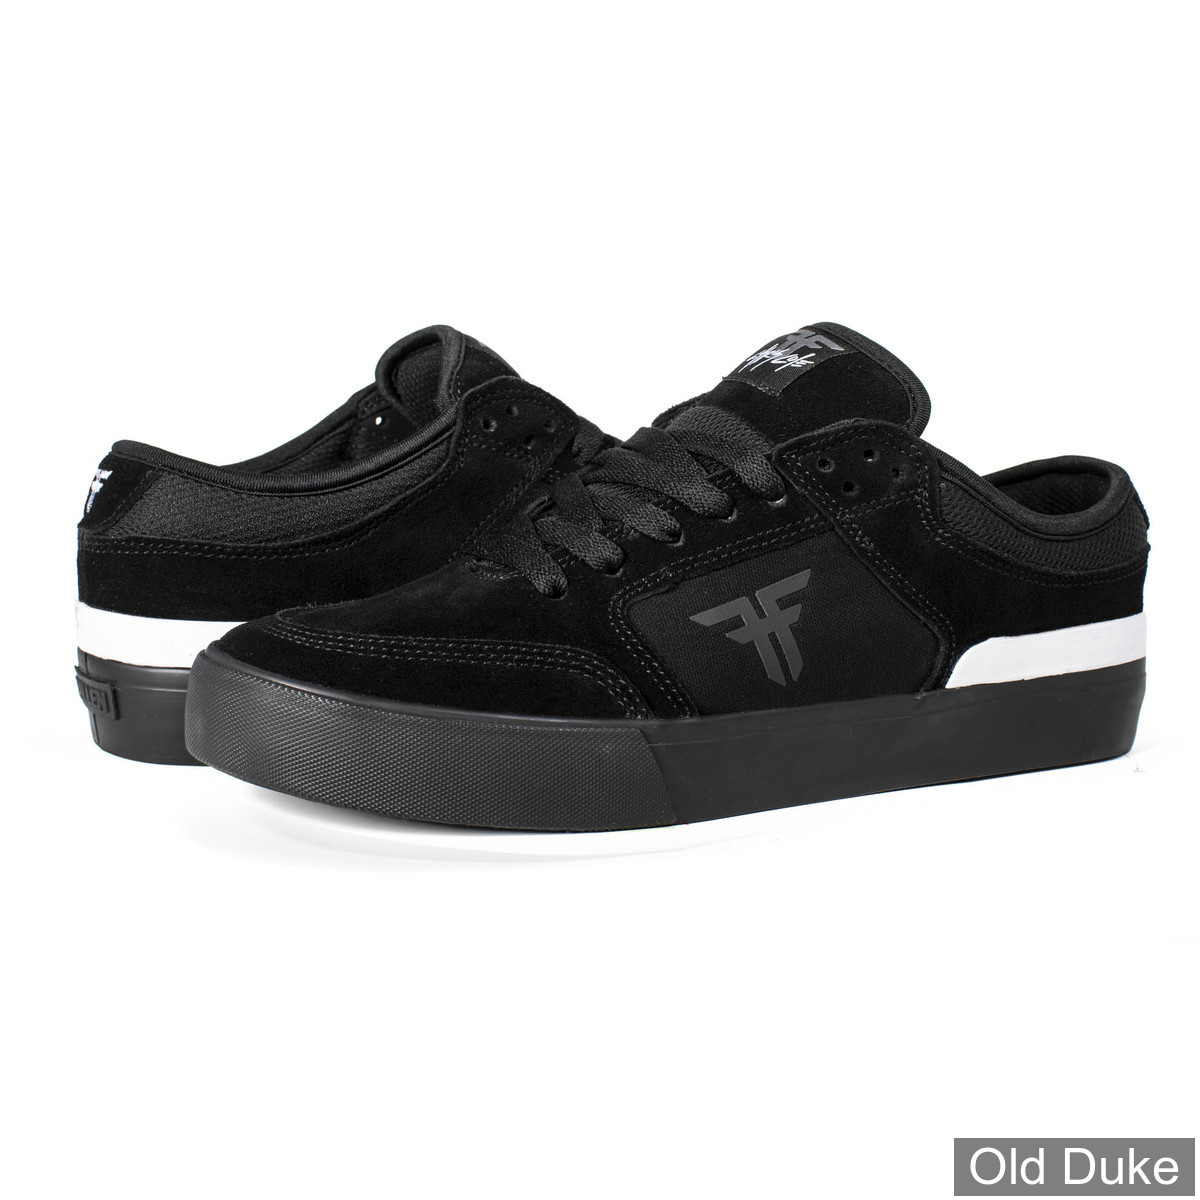 SKATE SHOES - FALLEN - RIPPER - BLACK BLACK WHITE - TAILLE : 41